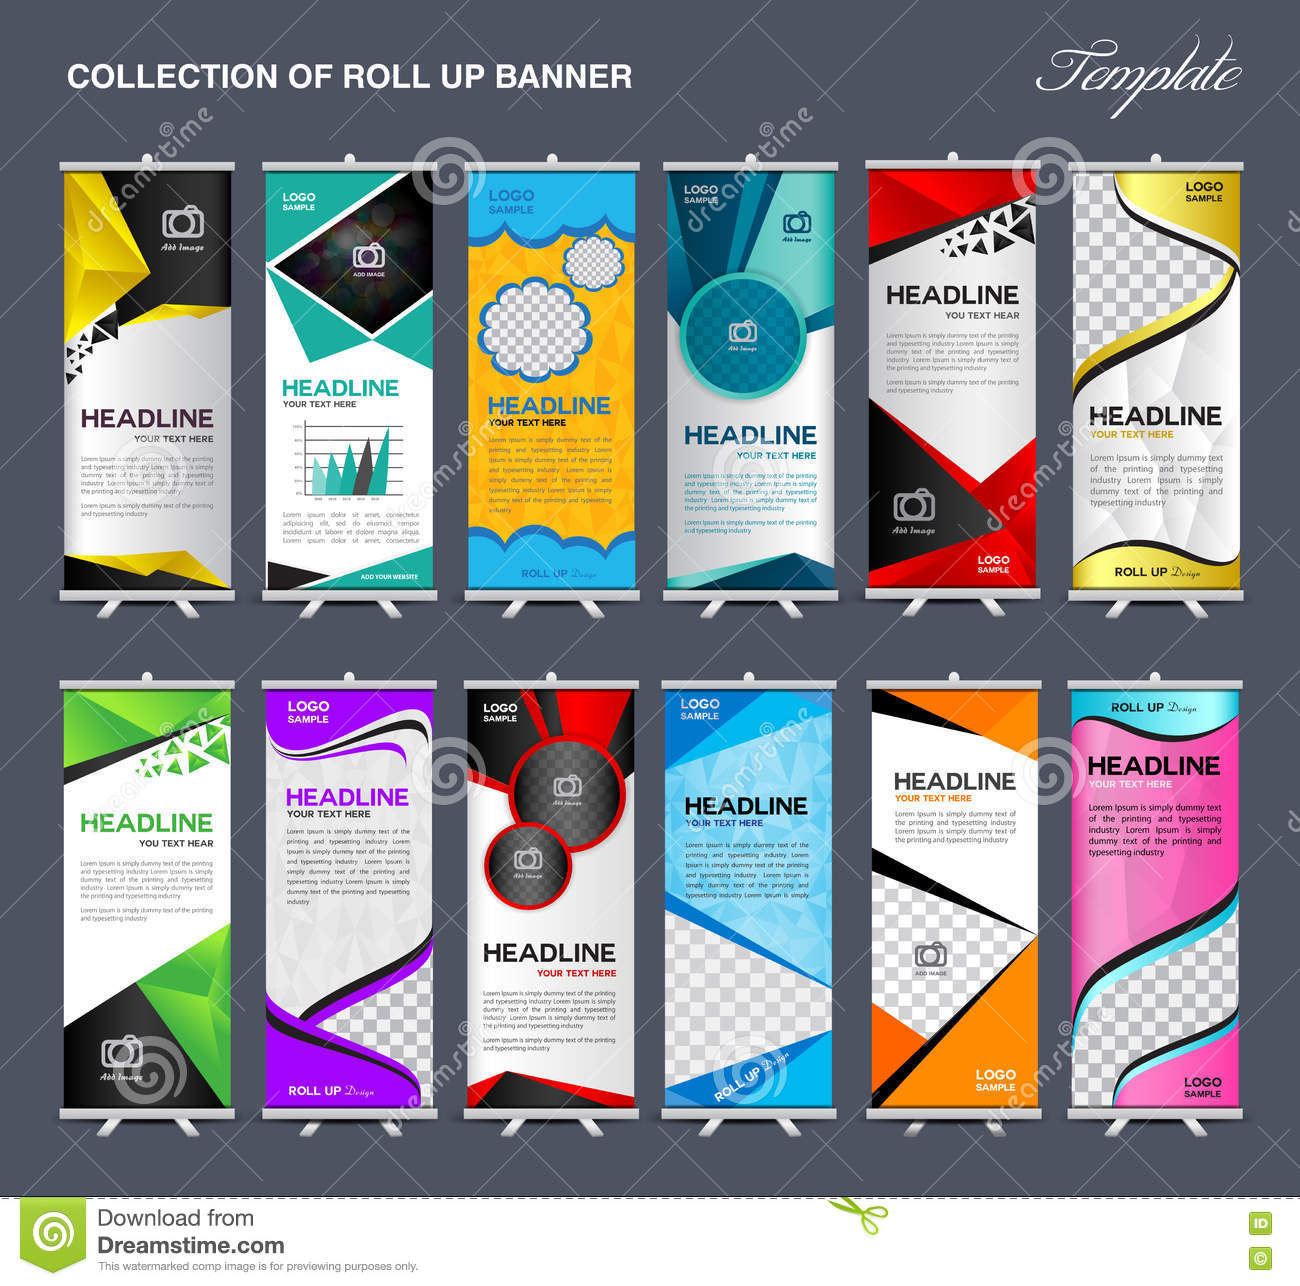 Collection of Roll Up Banner Design stand template vector illustration